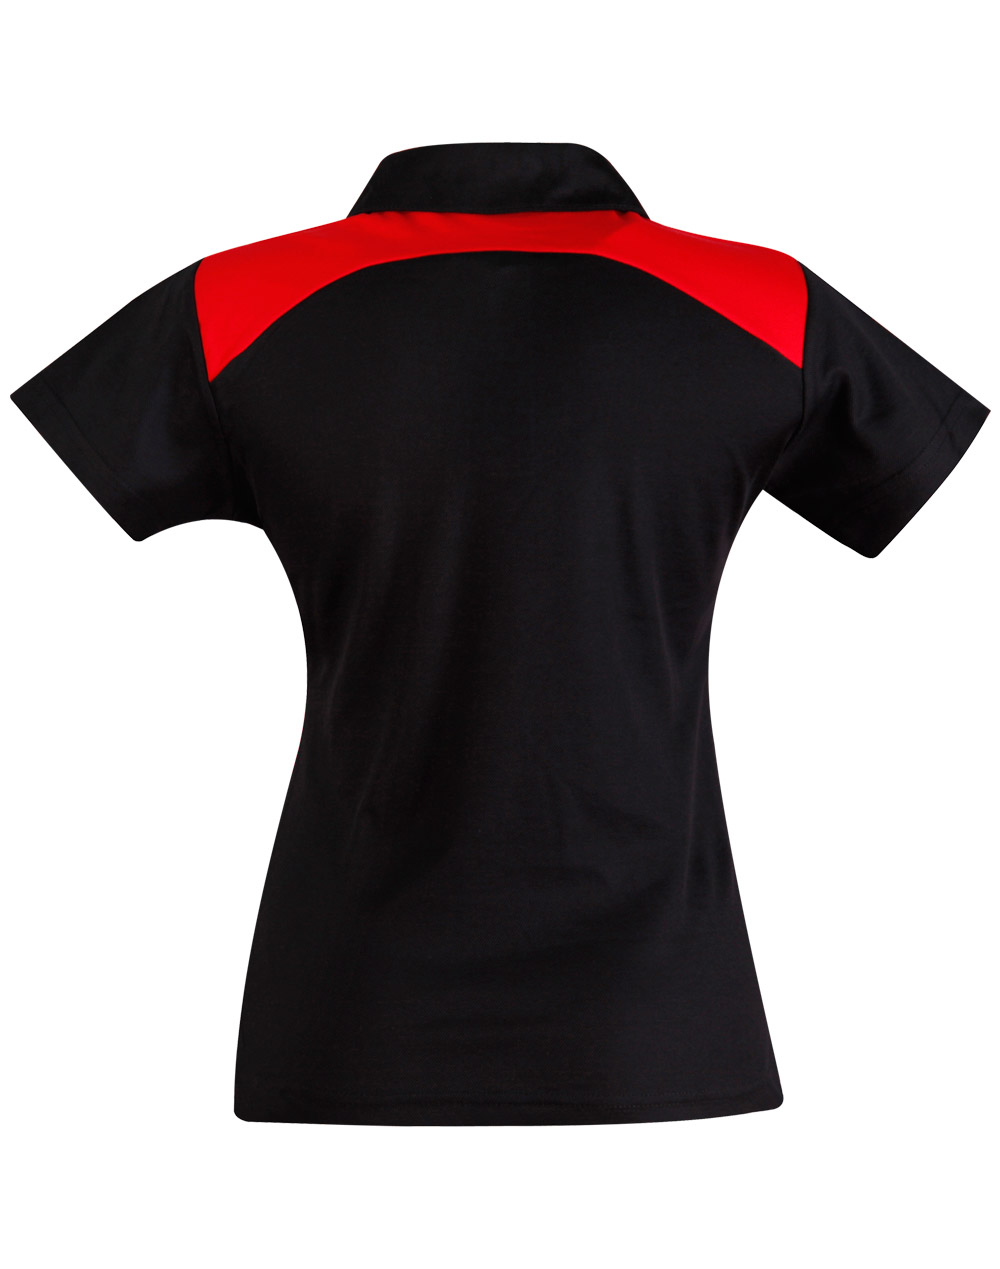 https://s3-ap-southeast-1.amazonaws.com/ws-imgs/POLOSHIRTS/PS32A_BlackRed_Back.jpg